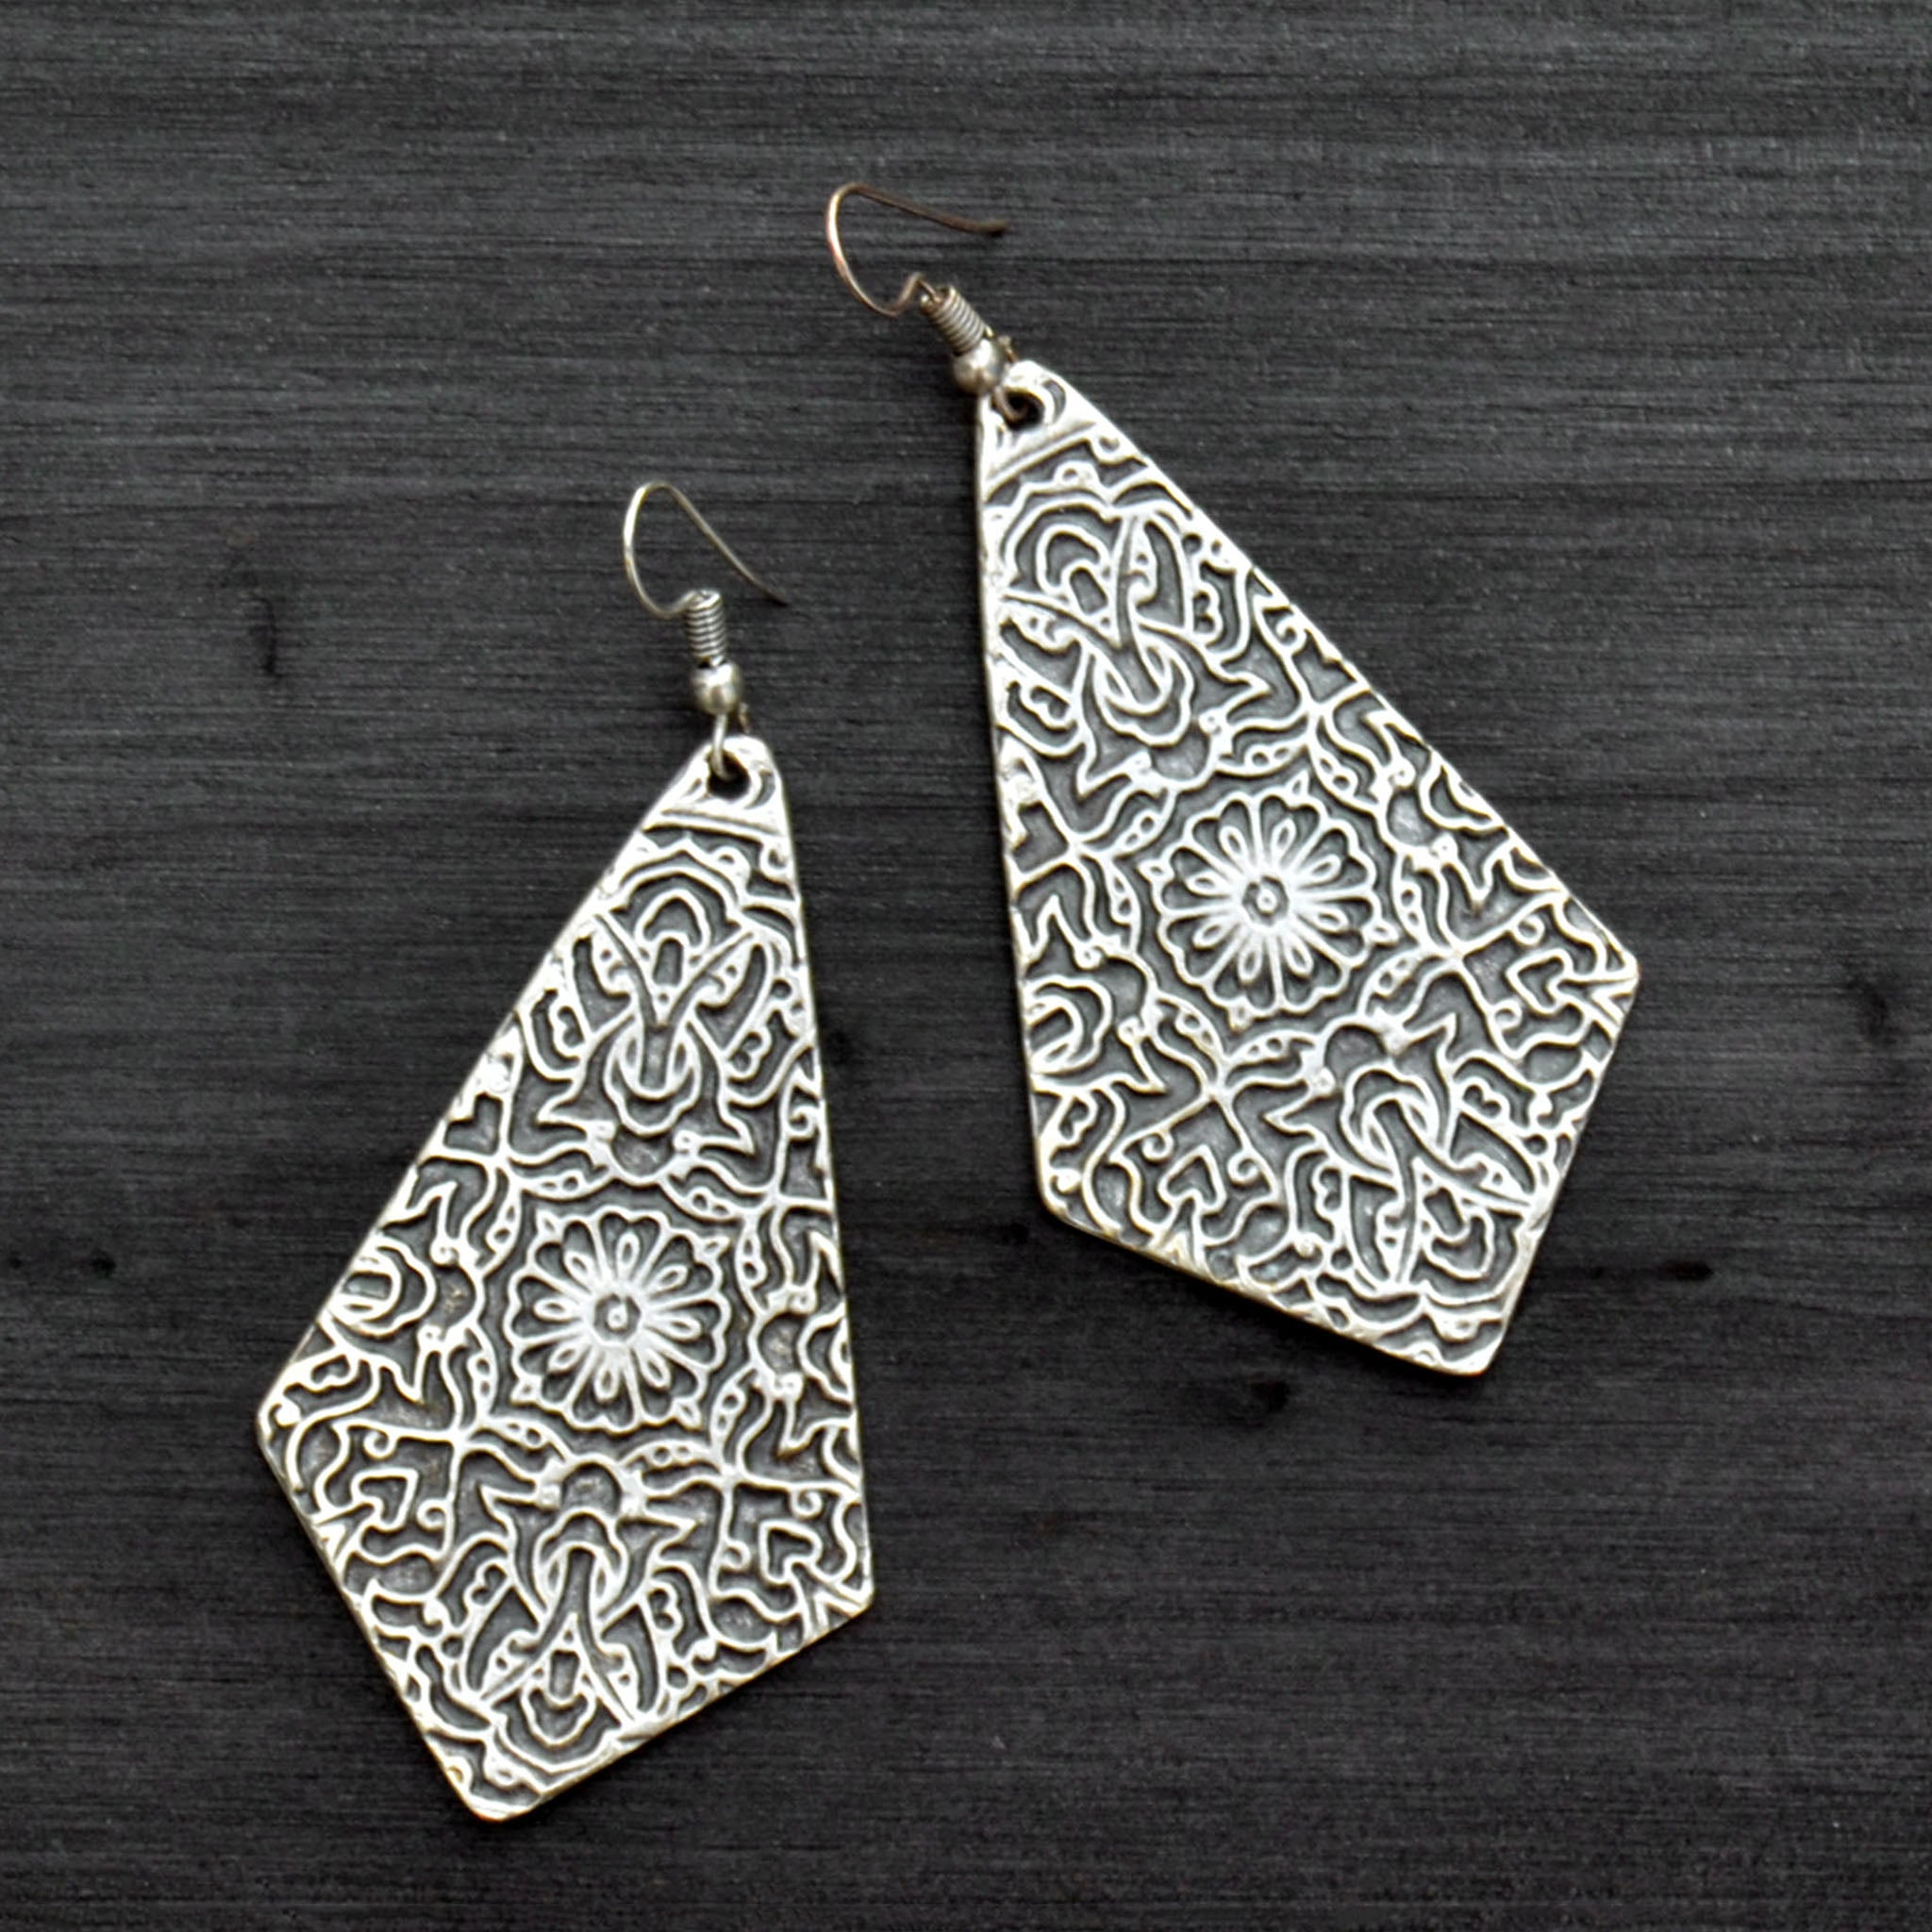 Boho tribal earrings